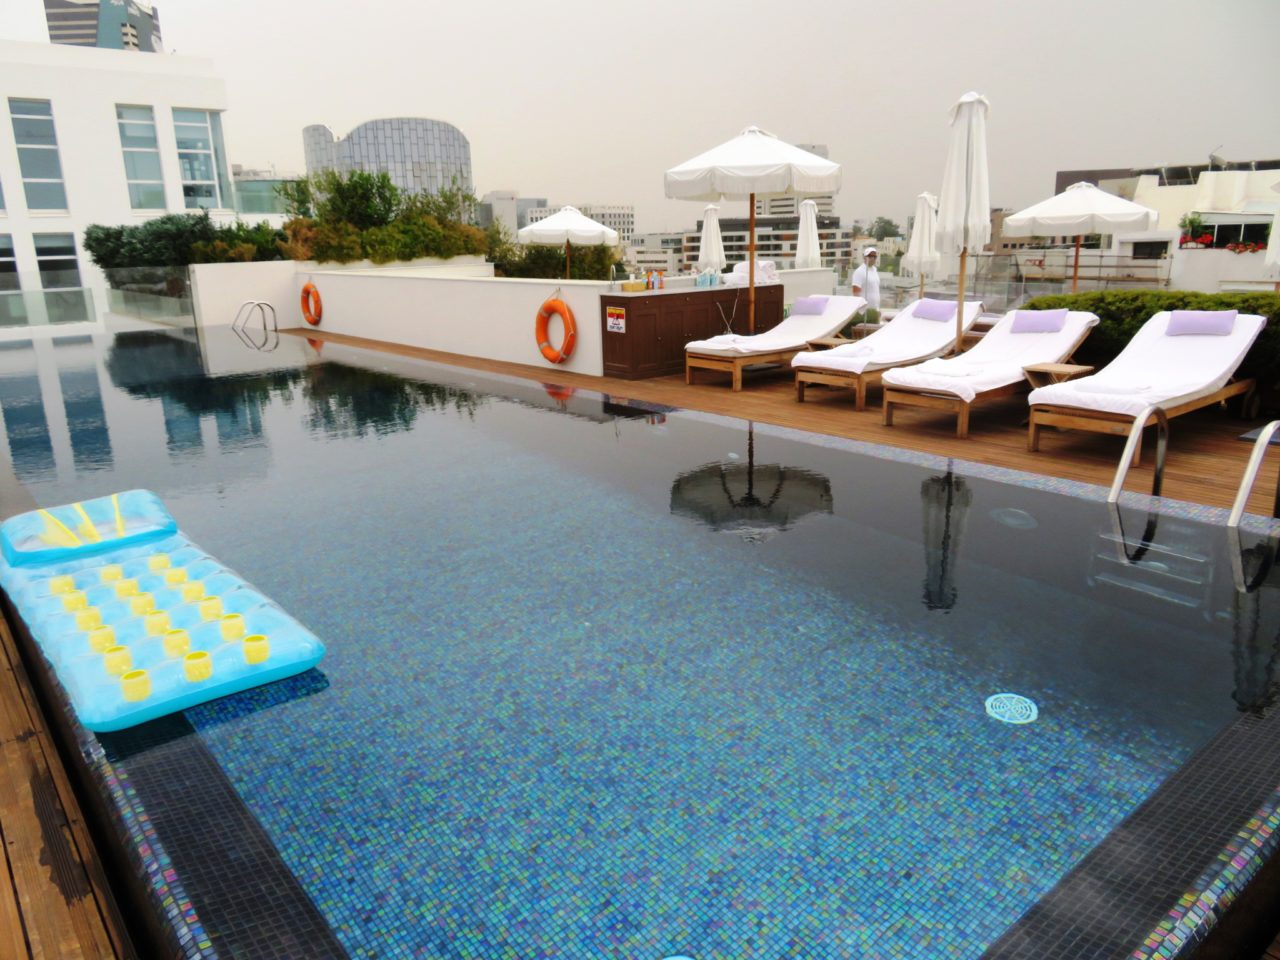 Vacationing in Israel ... Rooftop Infinity Pool at The Norman Hotel in Tel Aviv